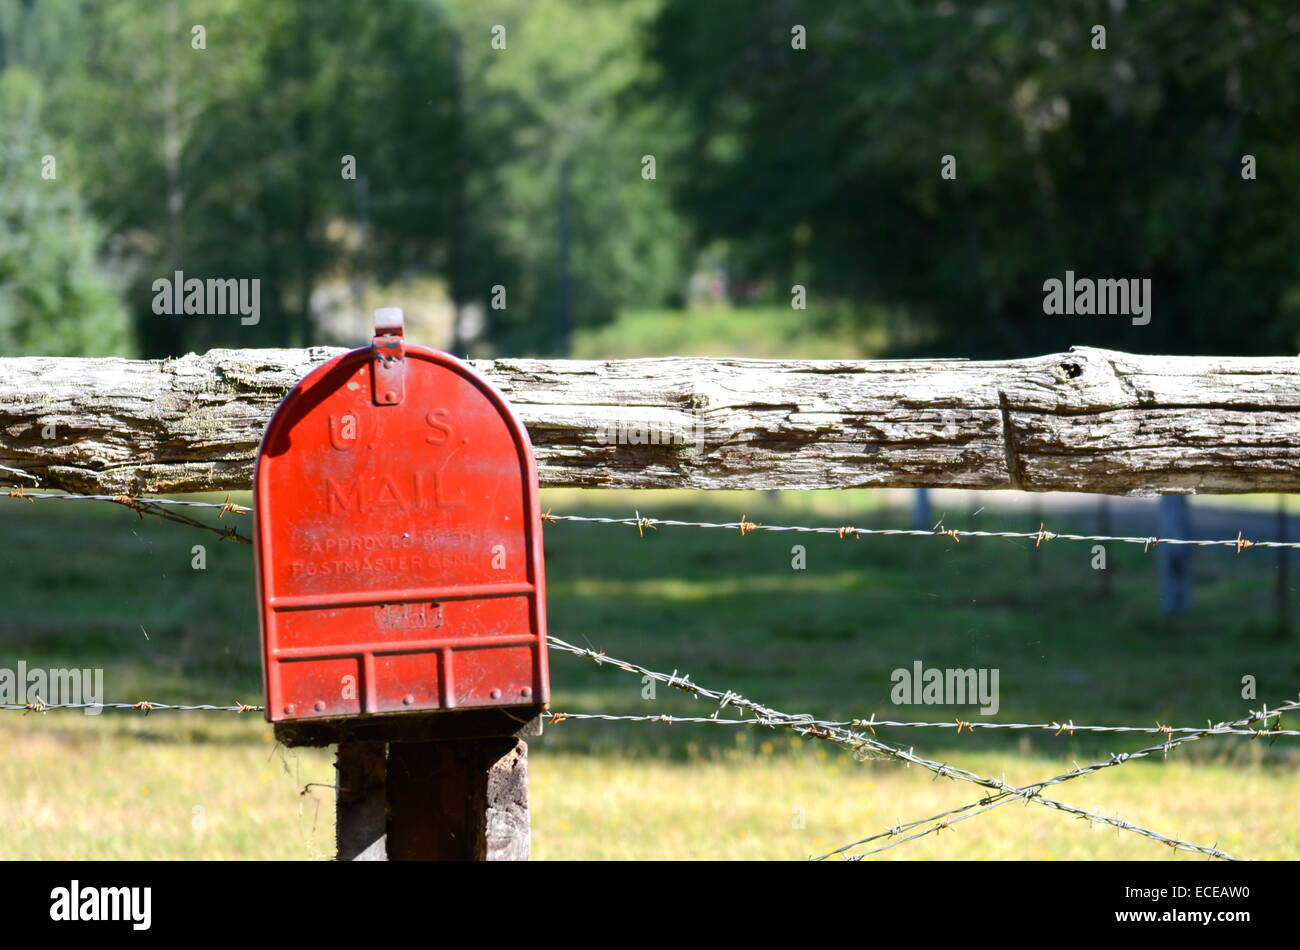 USA, Red mailbox on fencepost - Stock Image